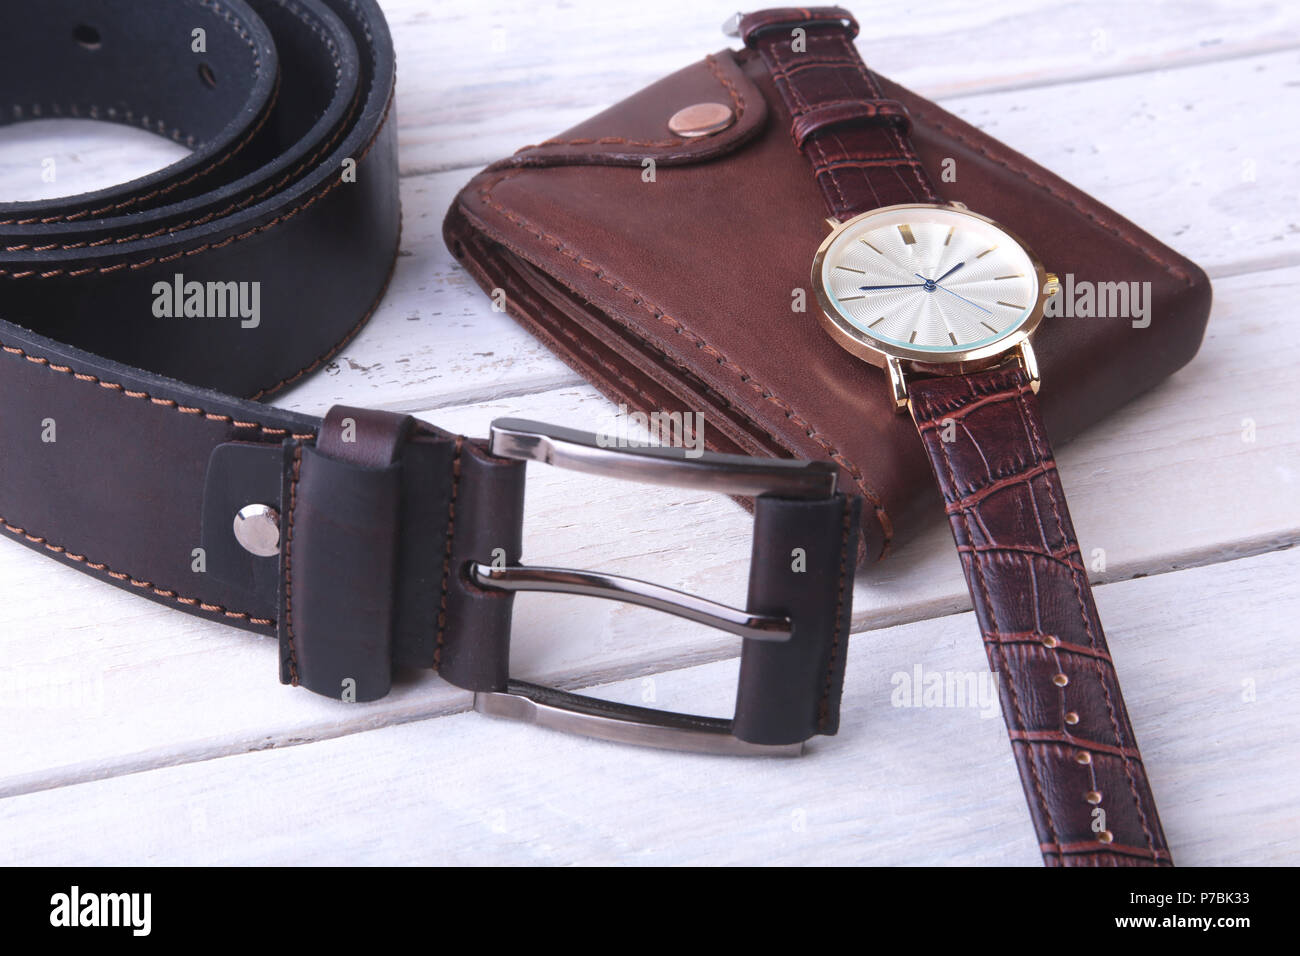 Men's accessories for business and rekreation. Leather belt, wallet, watch and smoking pipe on wood background.. Top view composition. - Stock Image